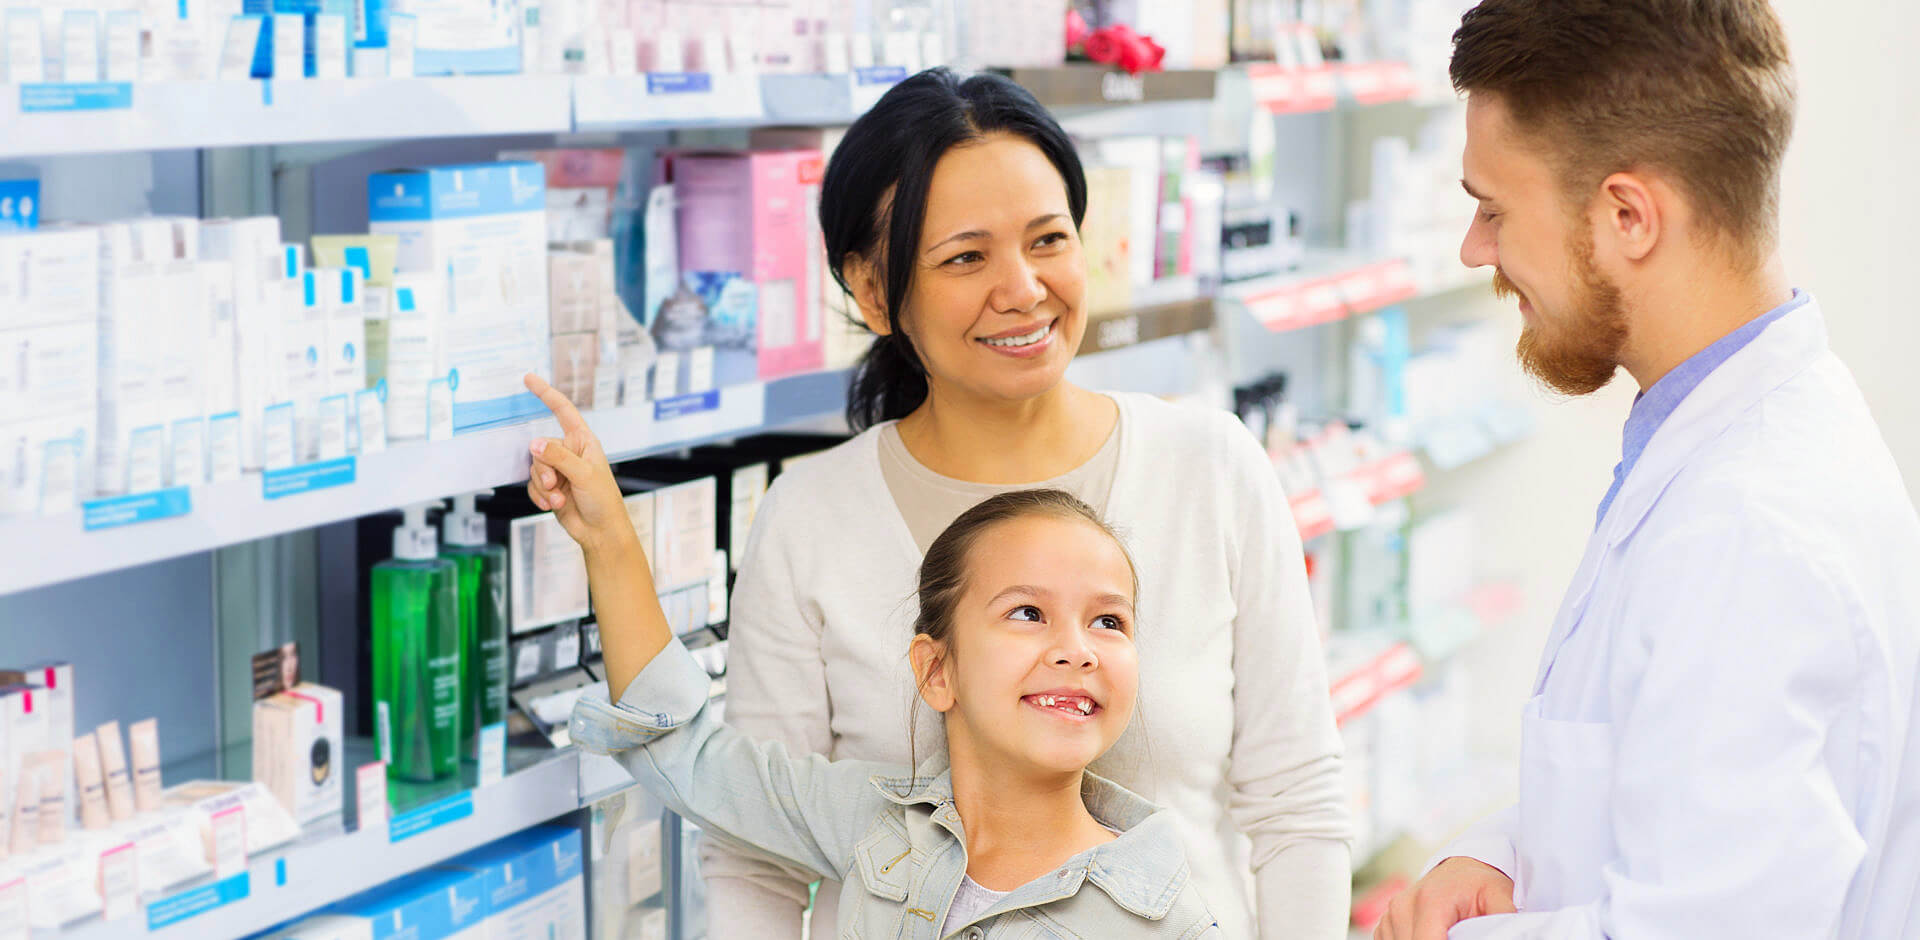 pharmacist and customers in pharmacy